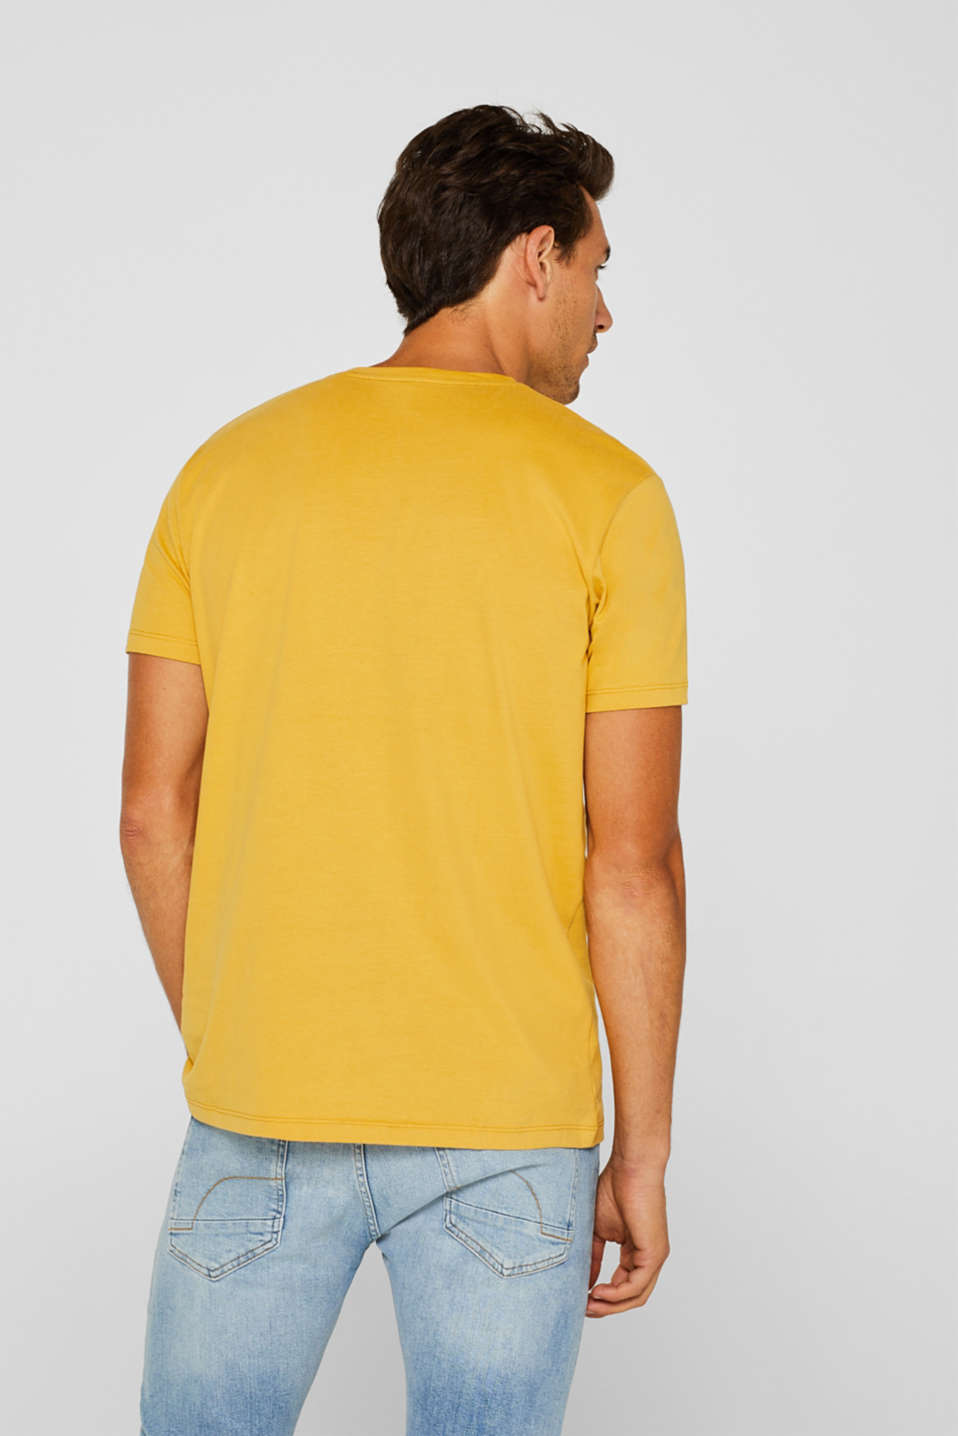 Jersey T-shirt in 100% cotton, YELLOW, detail image number 3